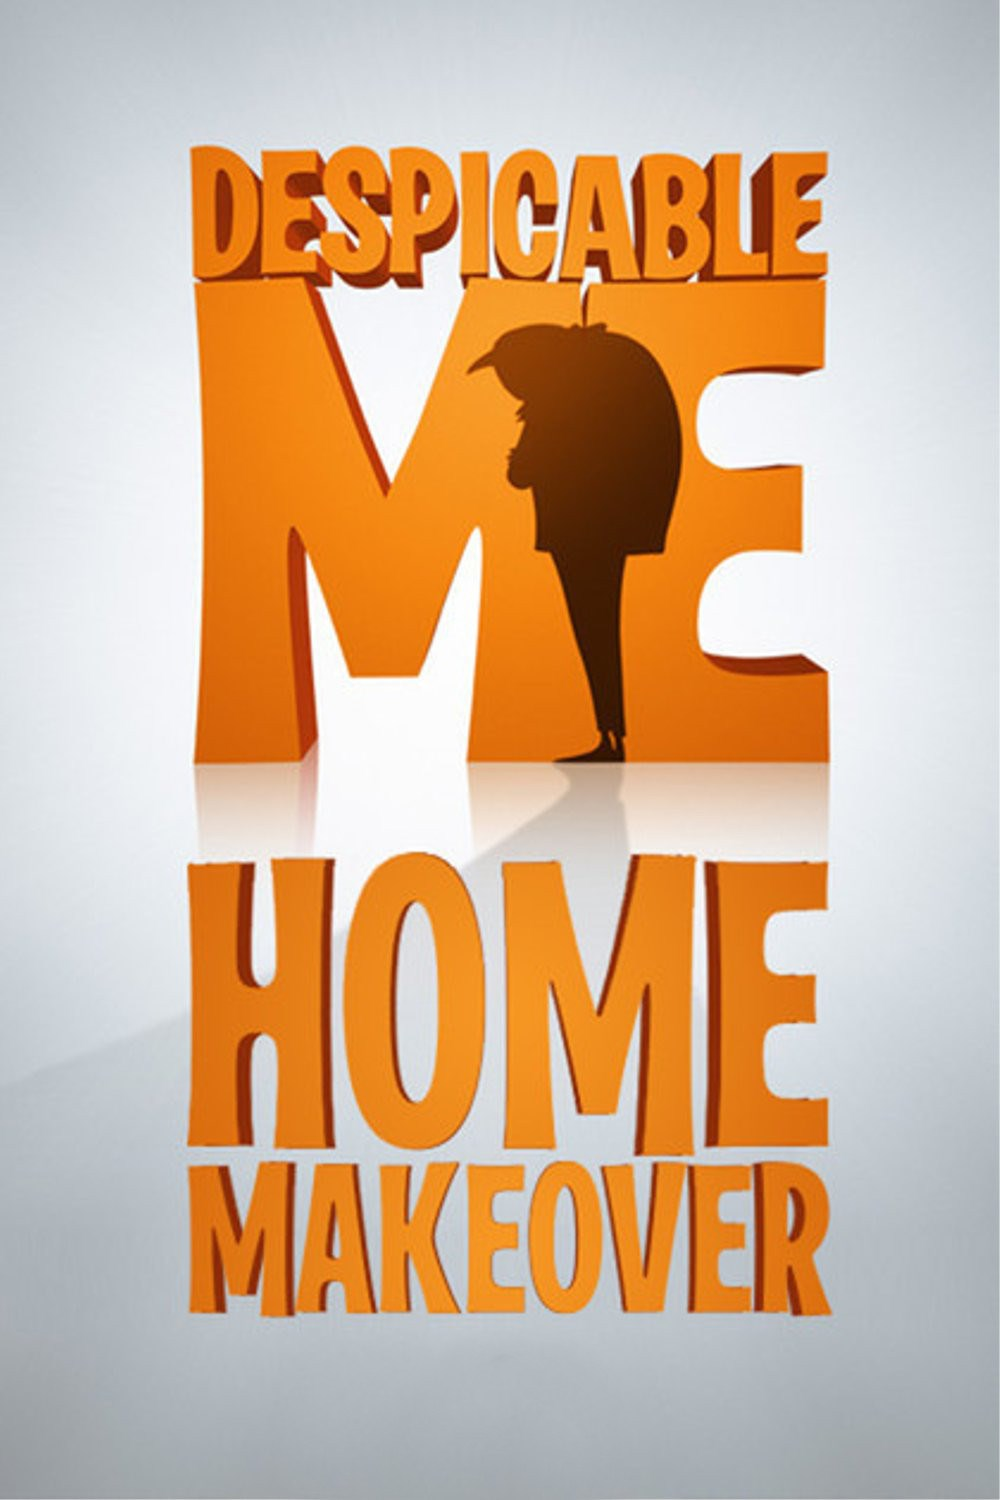 Subscene despicable me home makeover indonesian subtitle for Home makeover programs